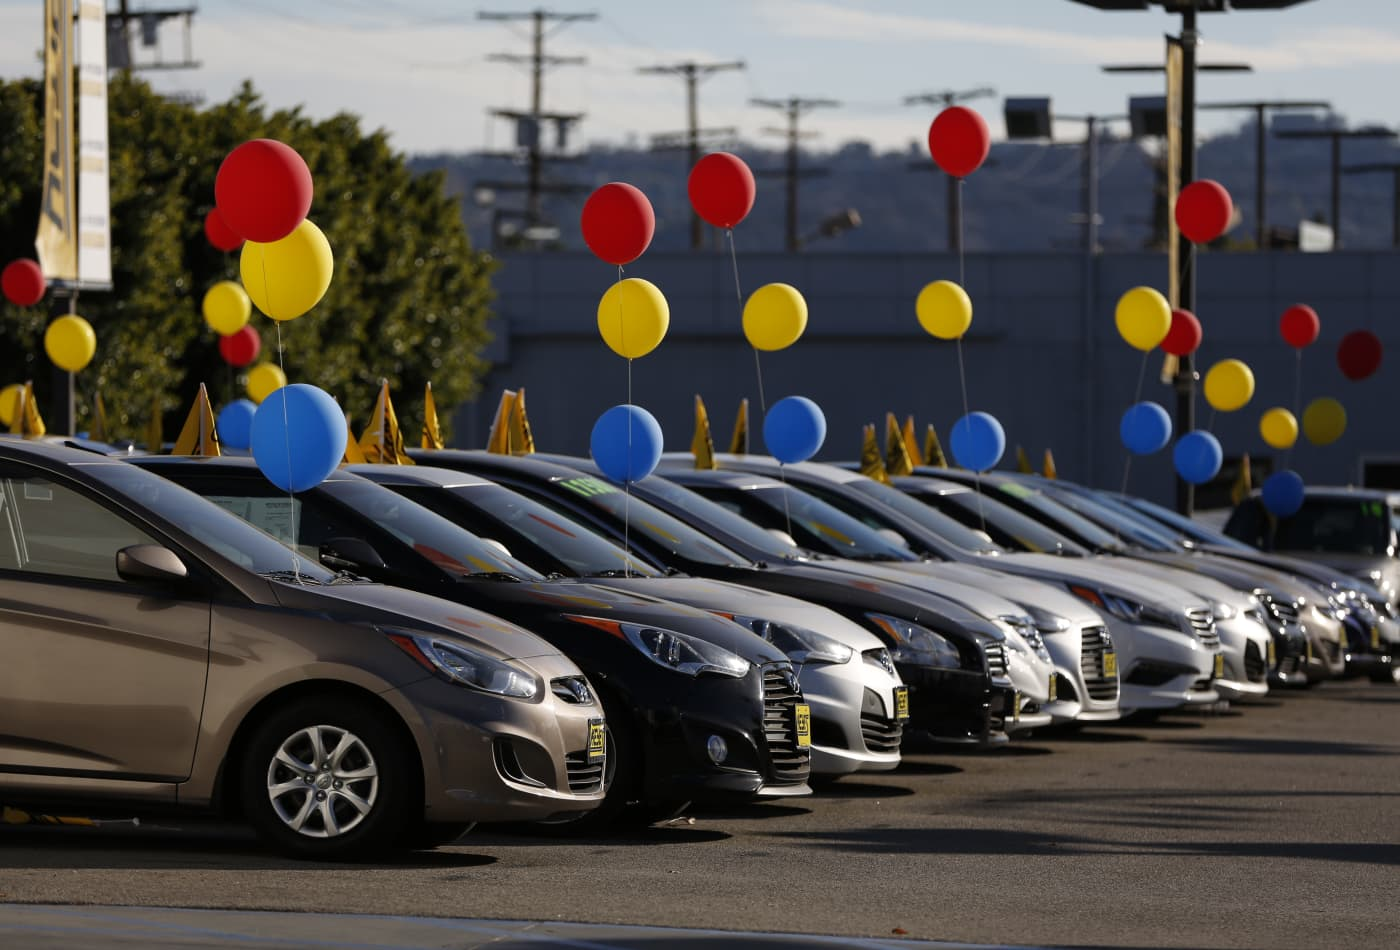 Former car salesman: The No. 1 mistake first-time car buyers make